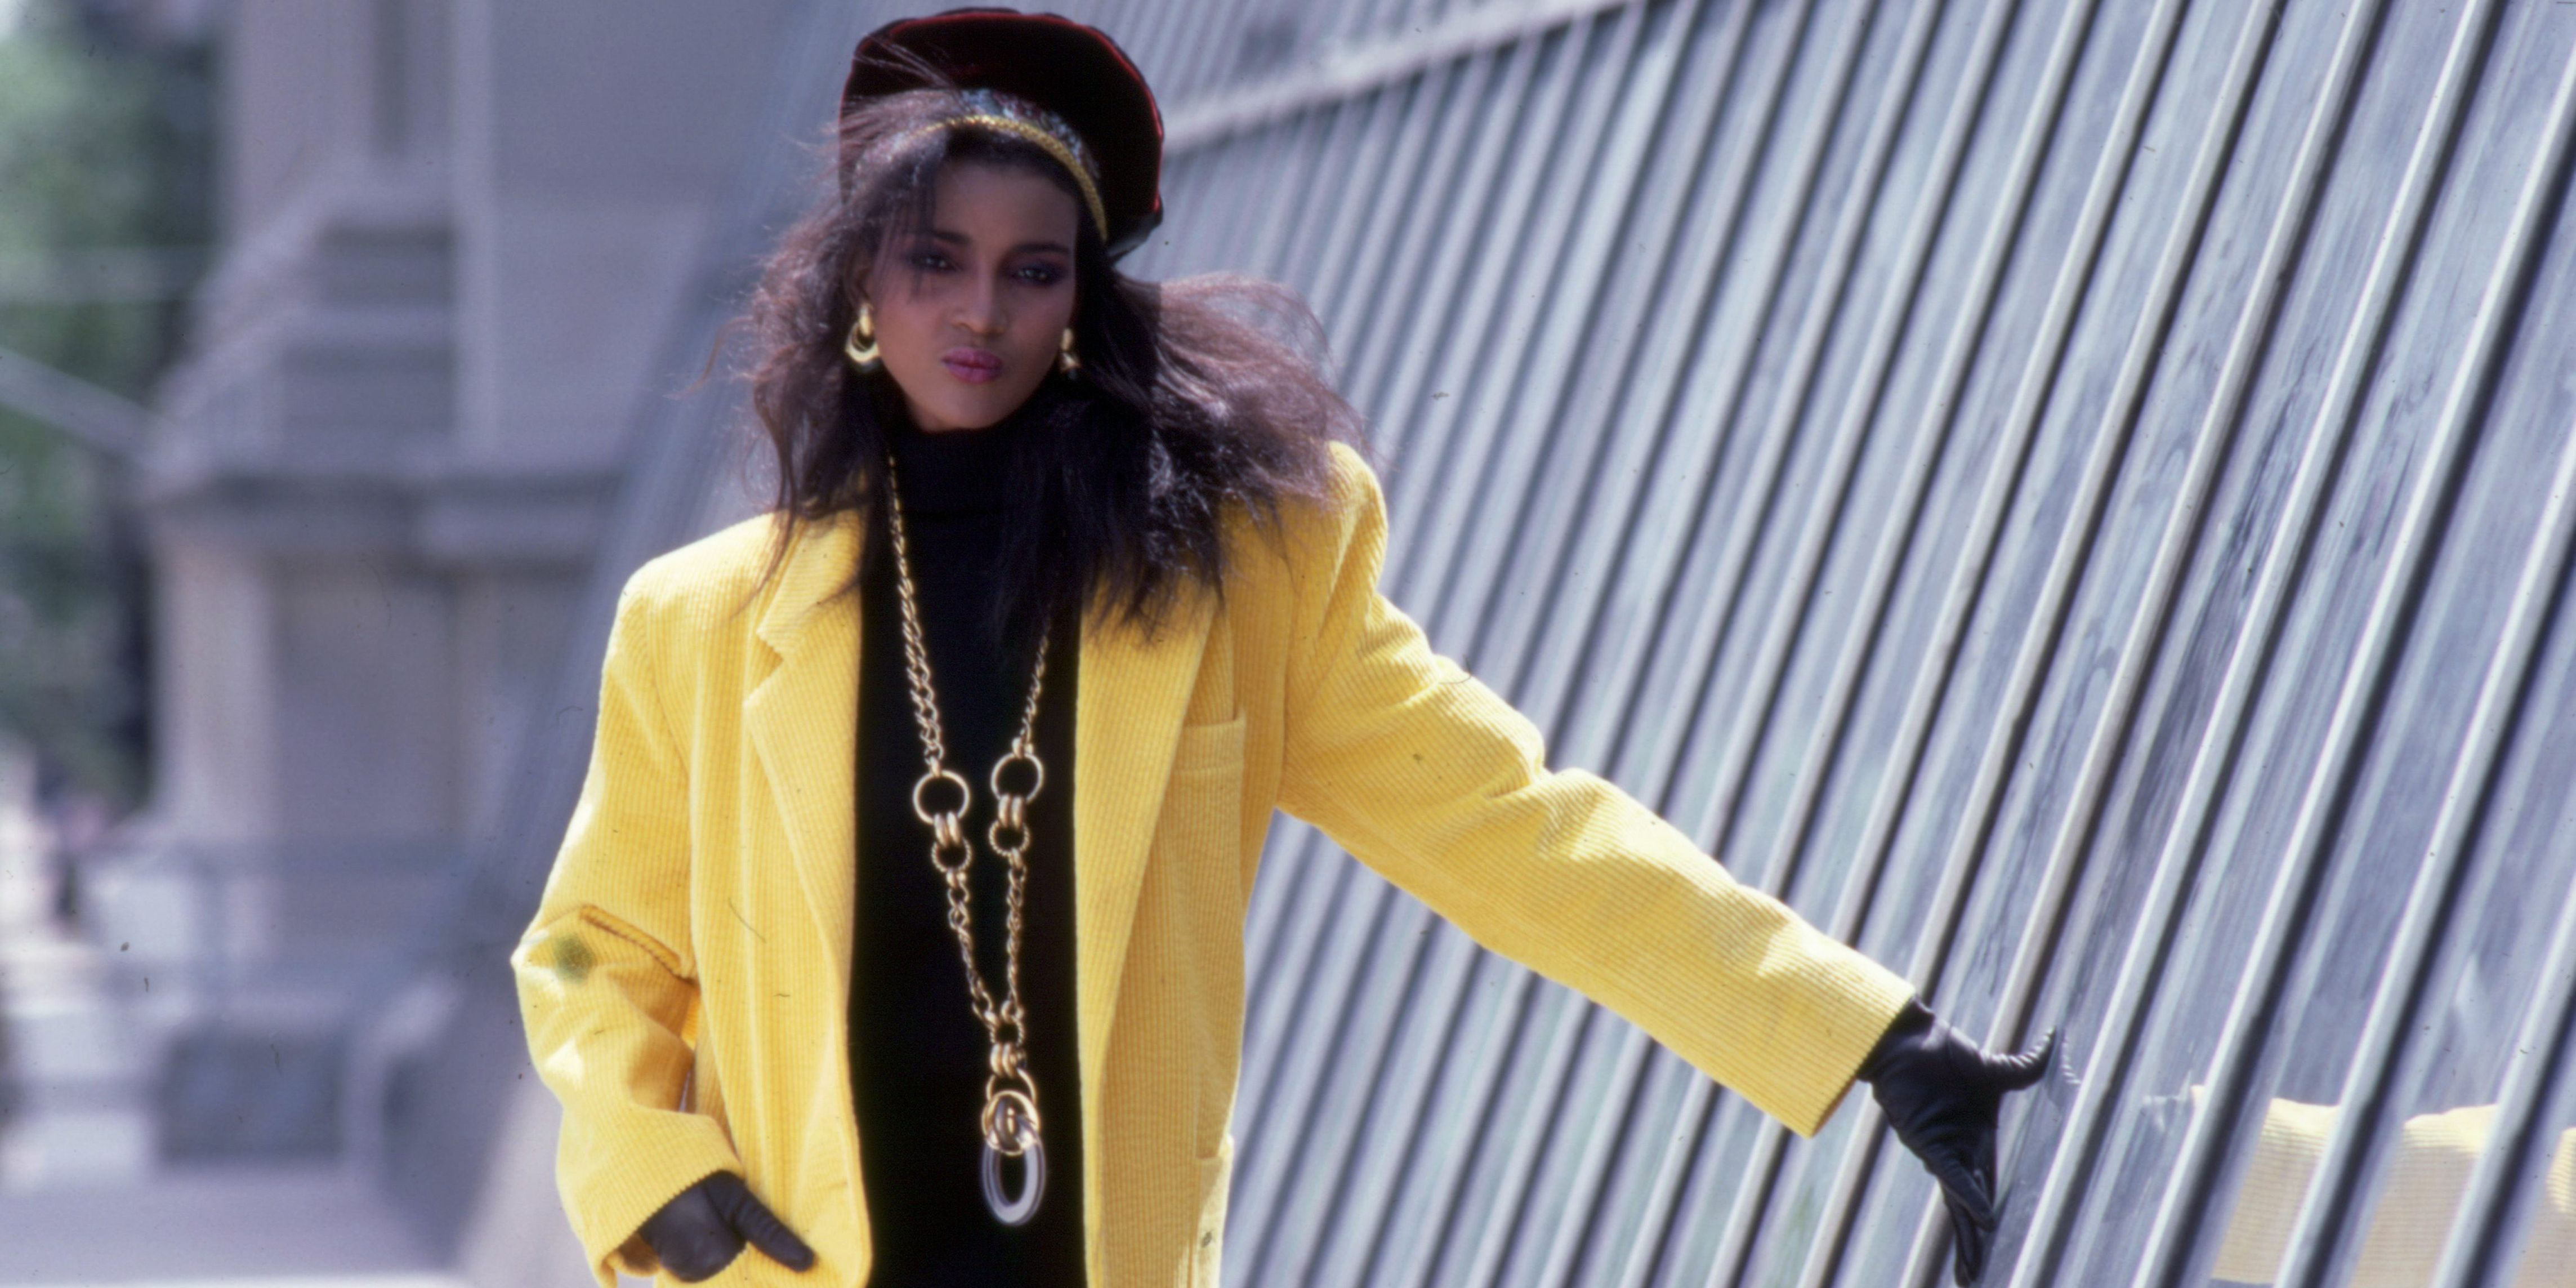 4071a94bb The Best of 1980s Fashion - Vintage 80s Outfits and Fashion Trends